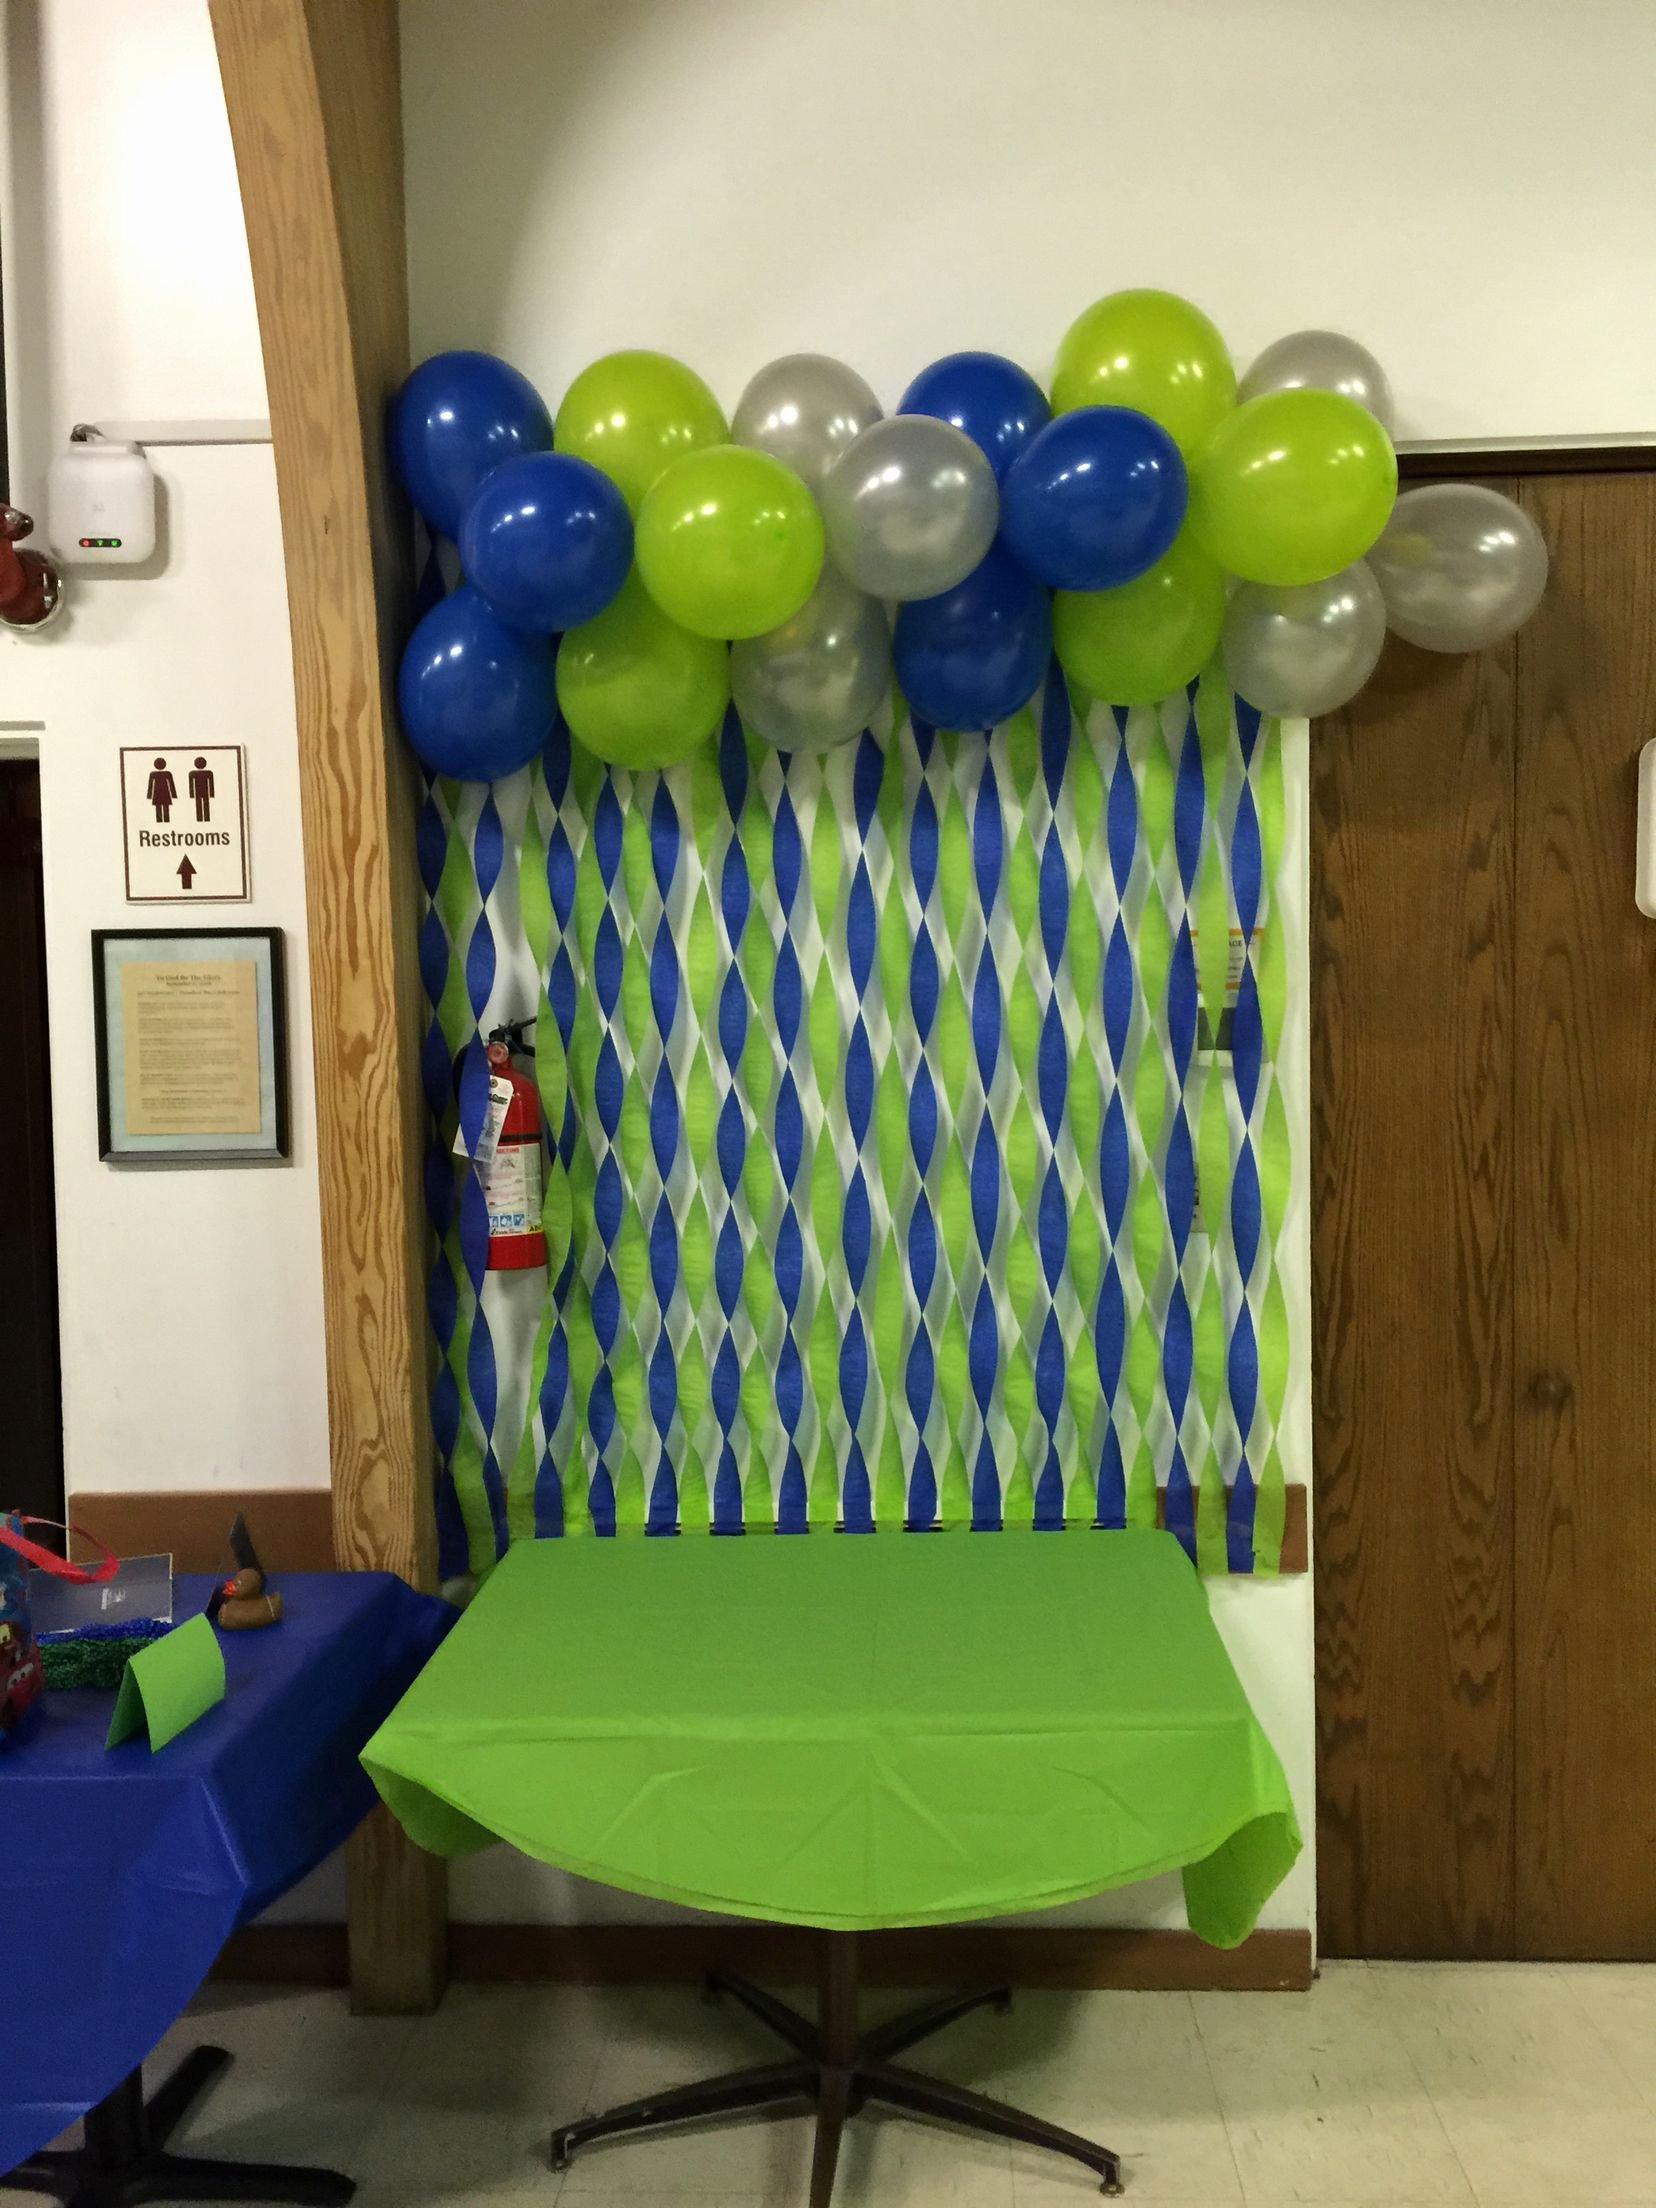 Birthday Decoration Ideas for Wall Unique Blue Green and Sliver Wall Decor with Streamers and